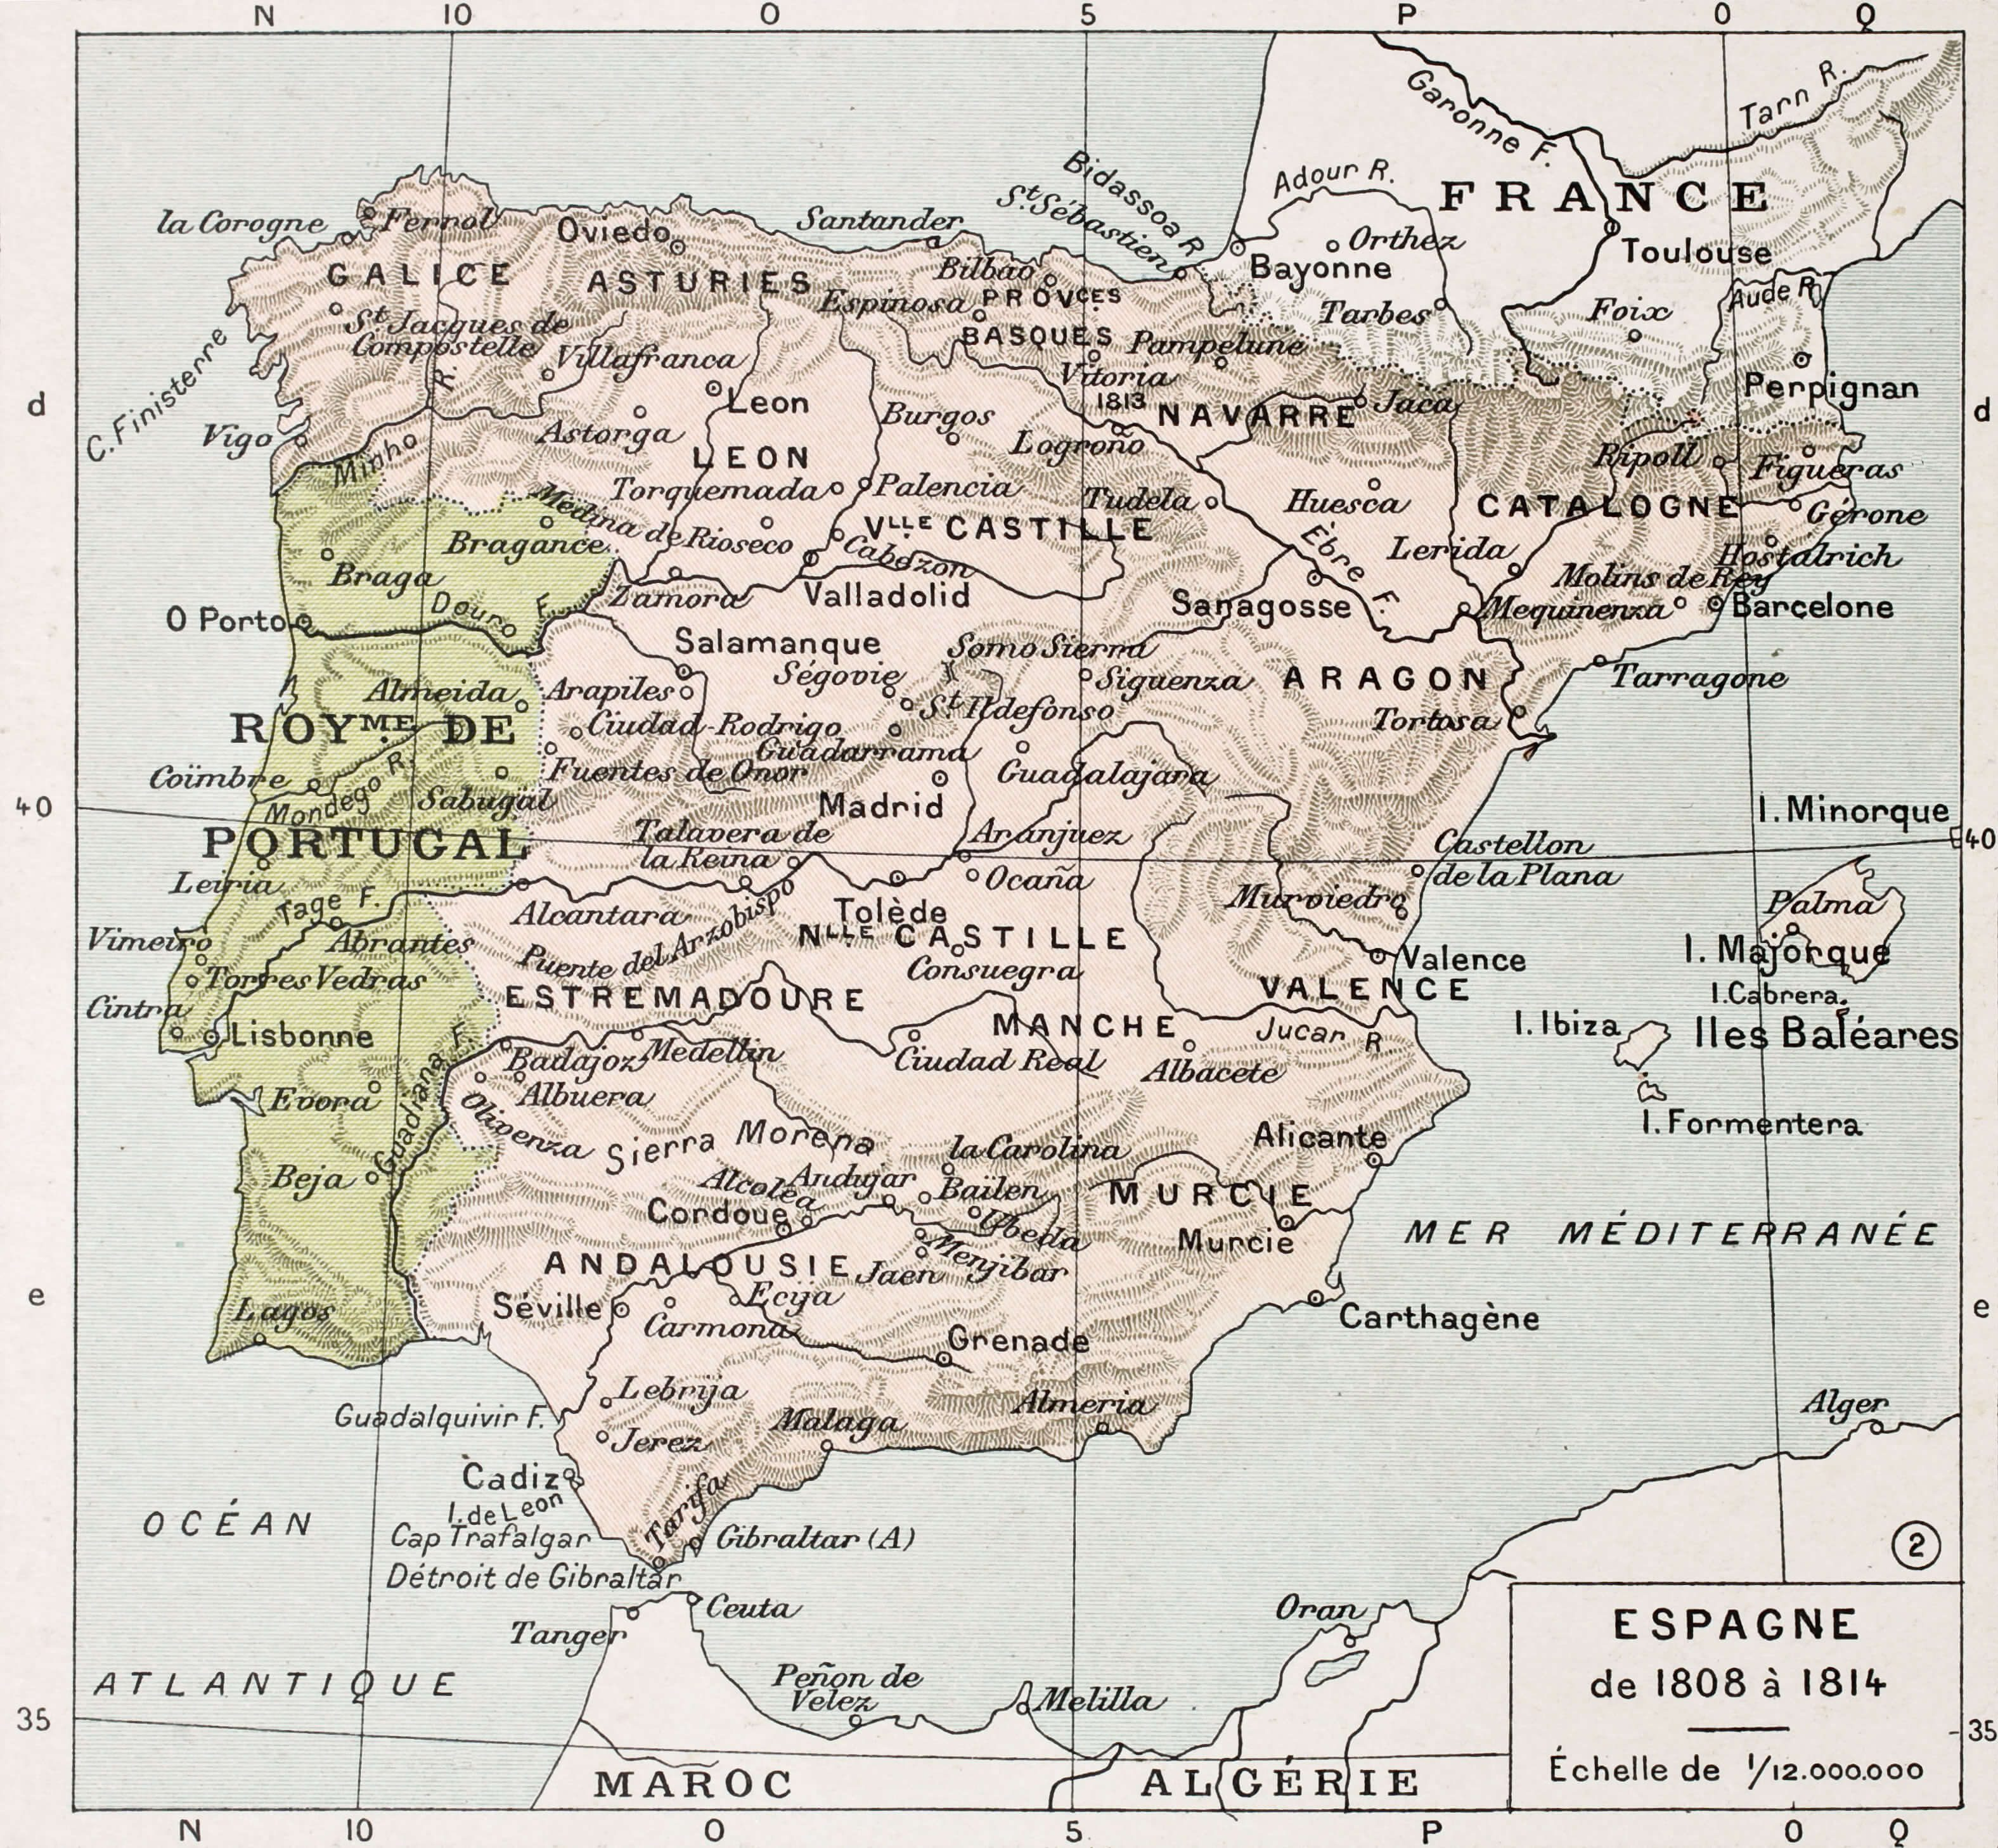 Spain Between 1808 and 1814 Old Map